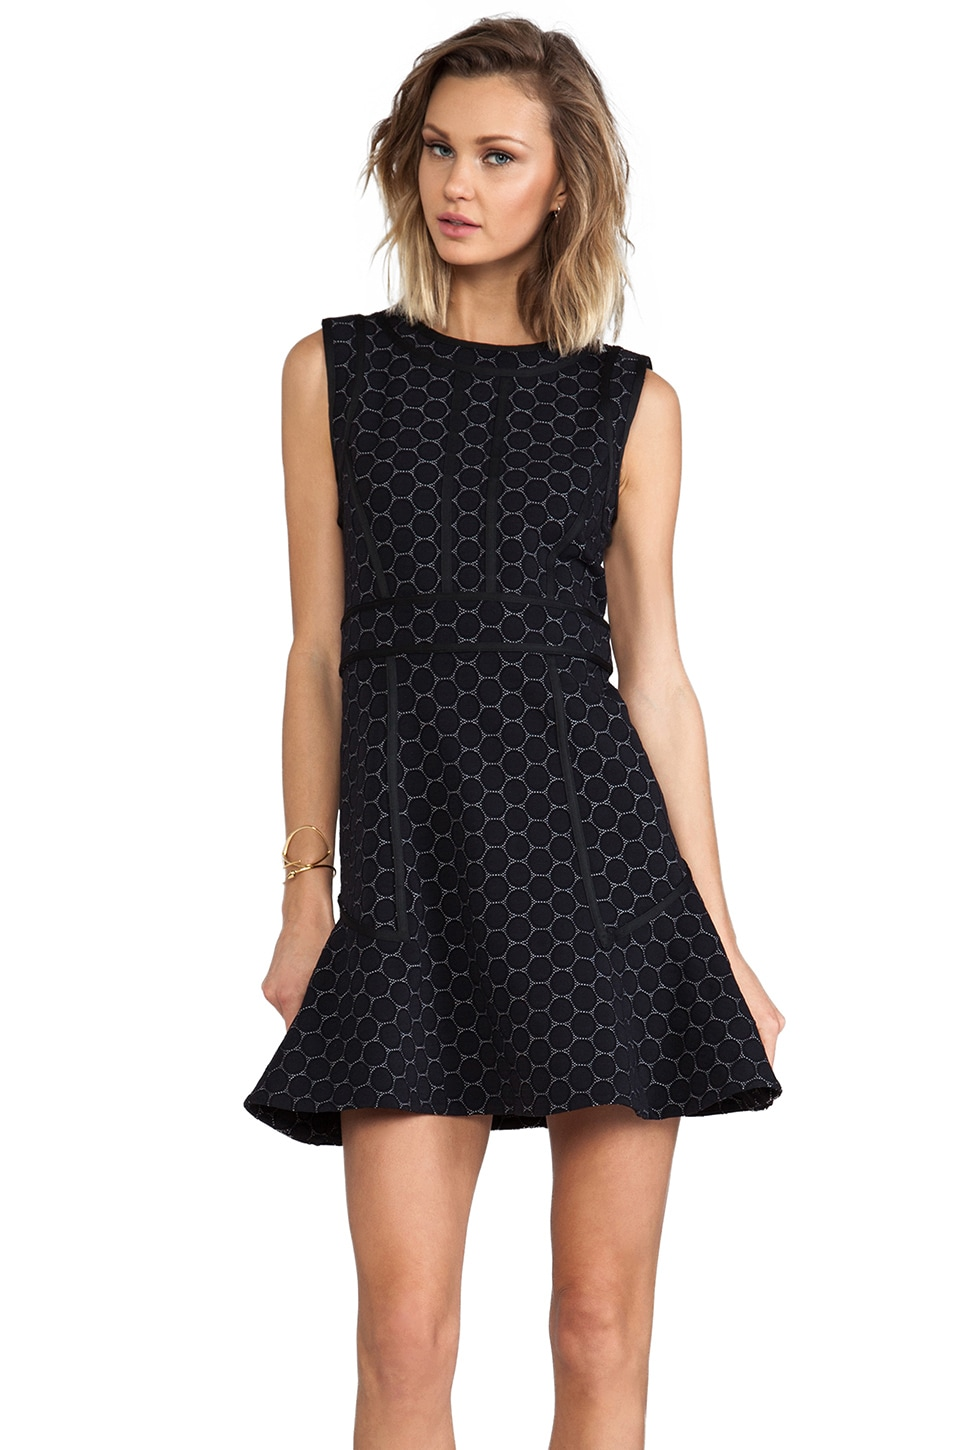 Marc by Marc Jacobs Leyna Dotty Ponte Dress in Black Multi